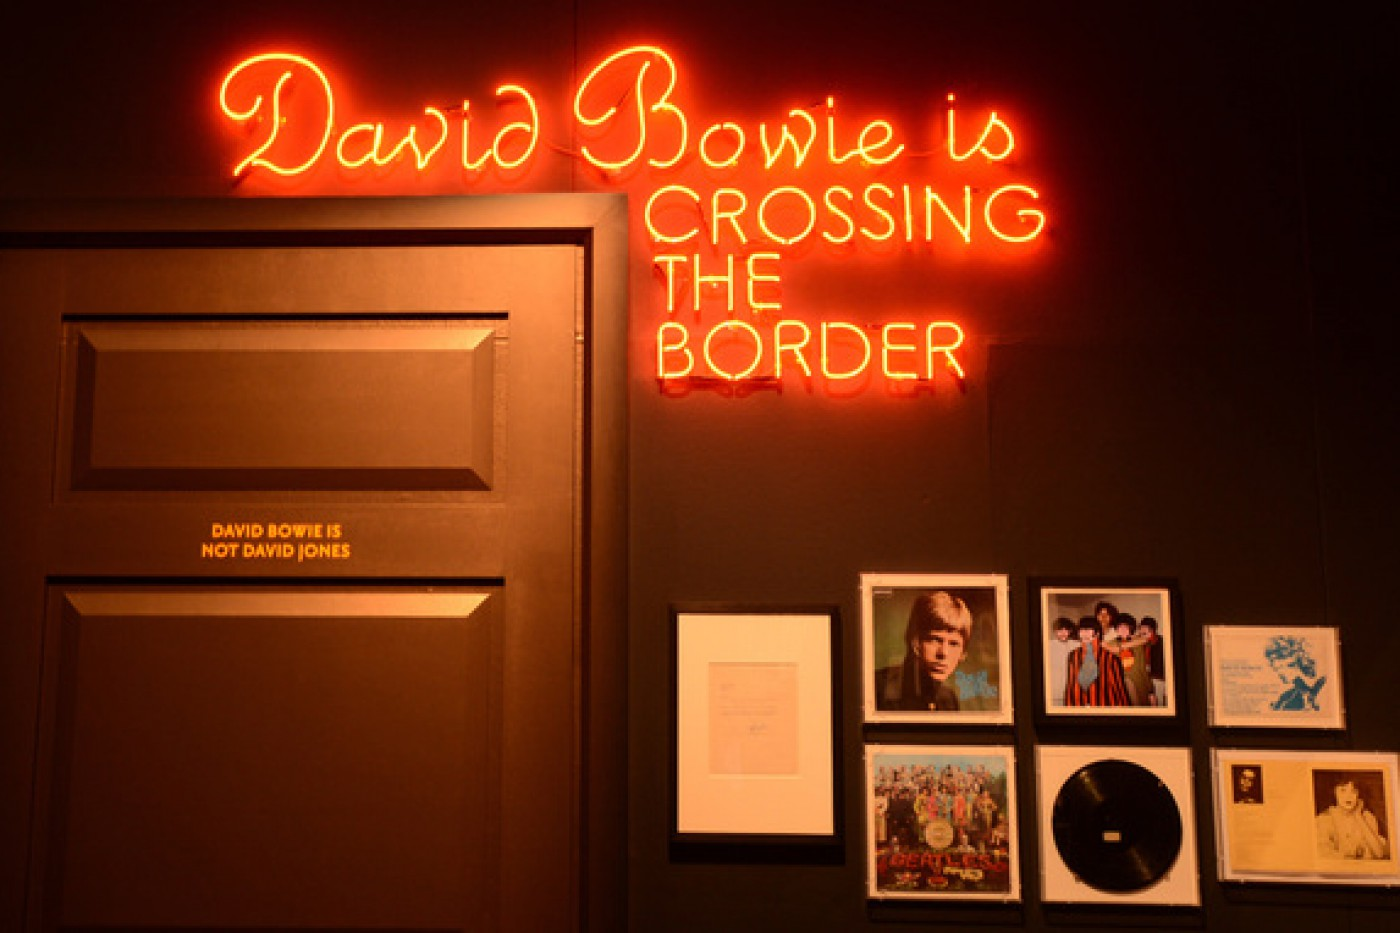 music-david-bowie-is-1